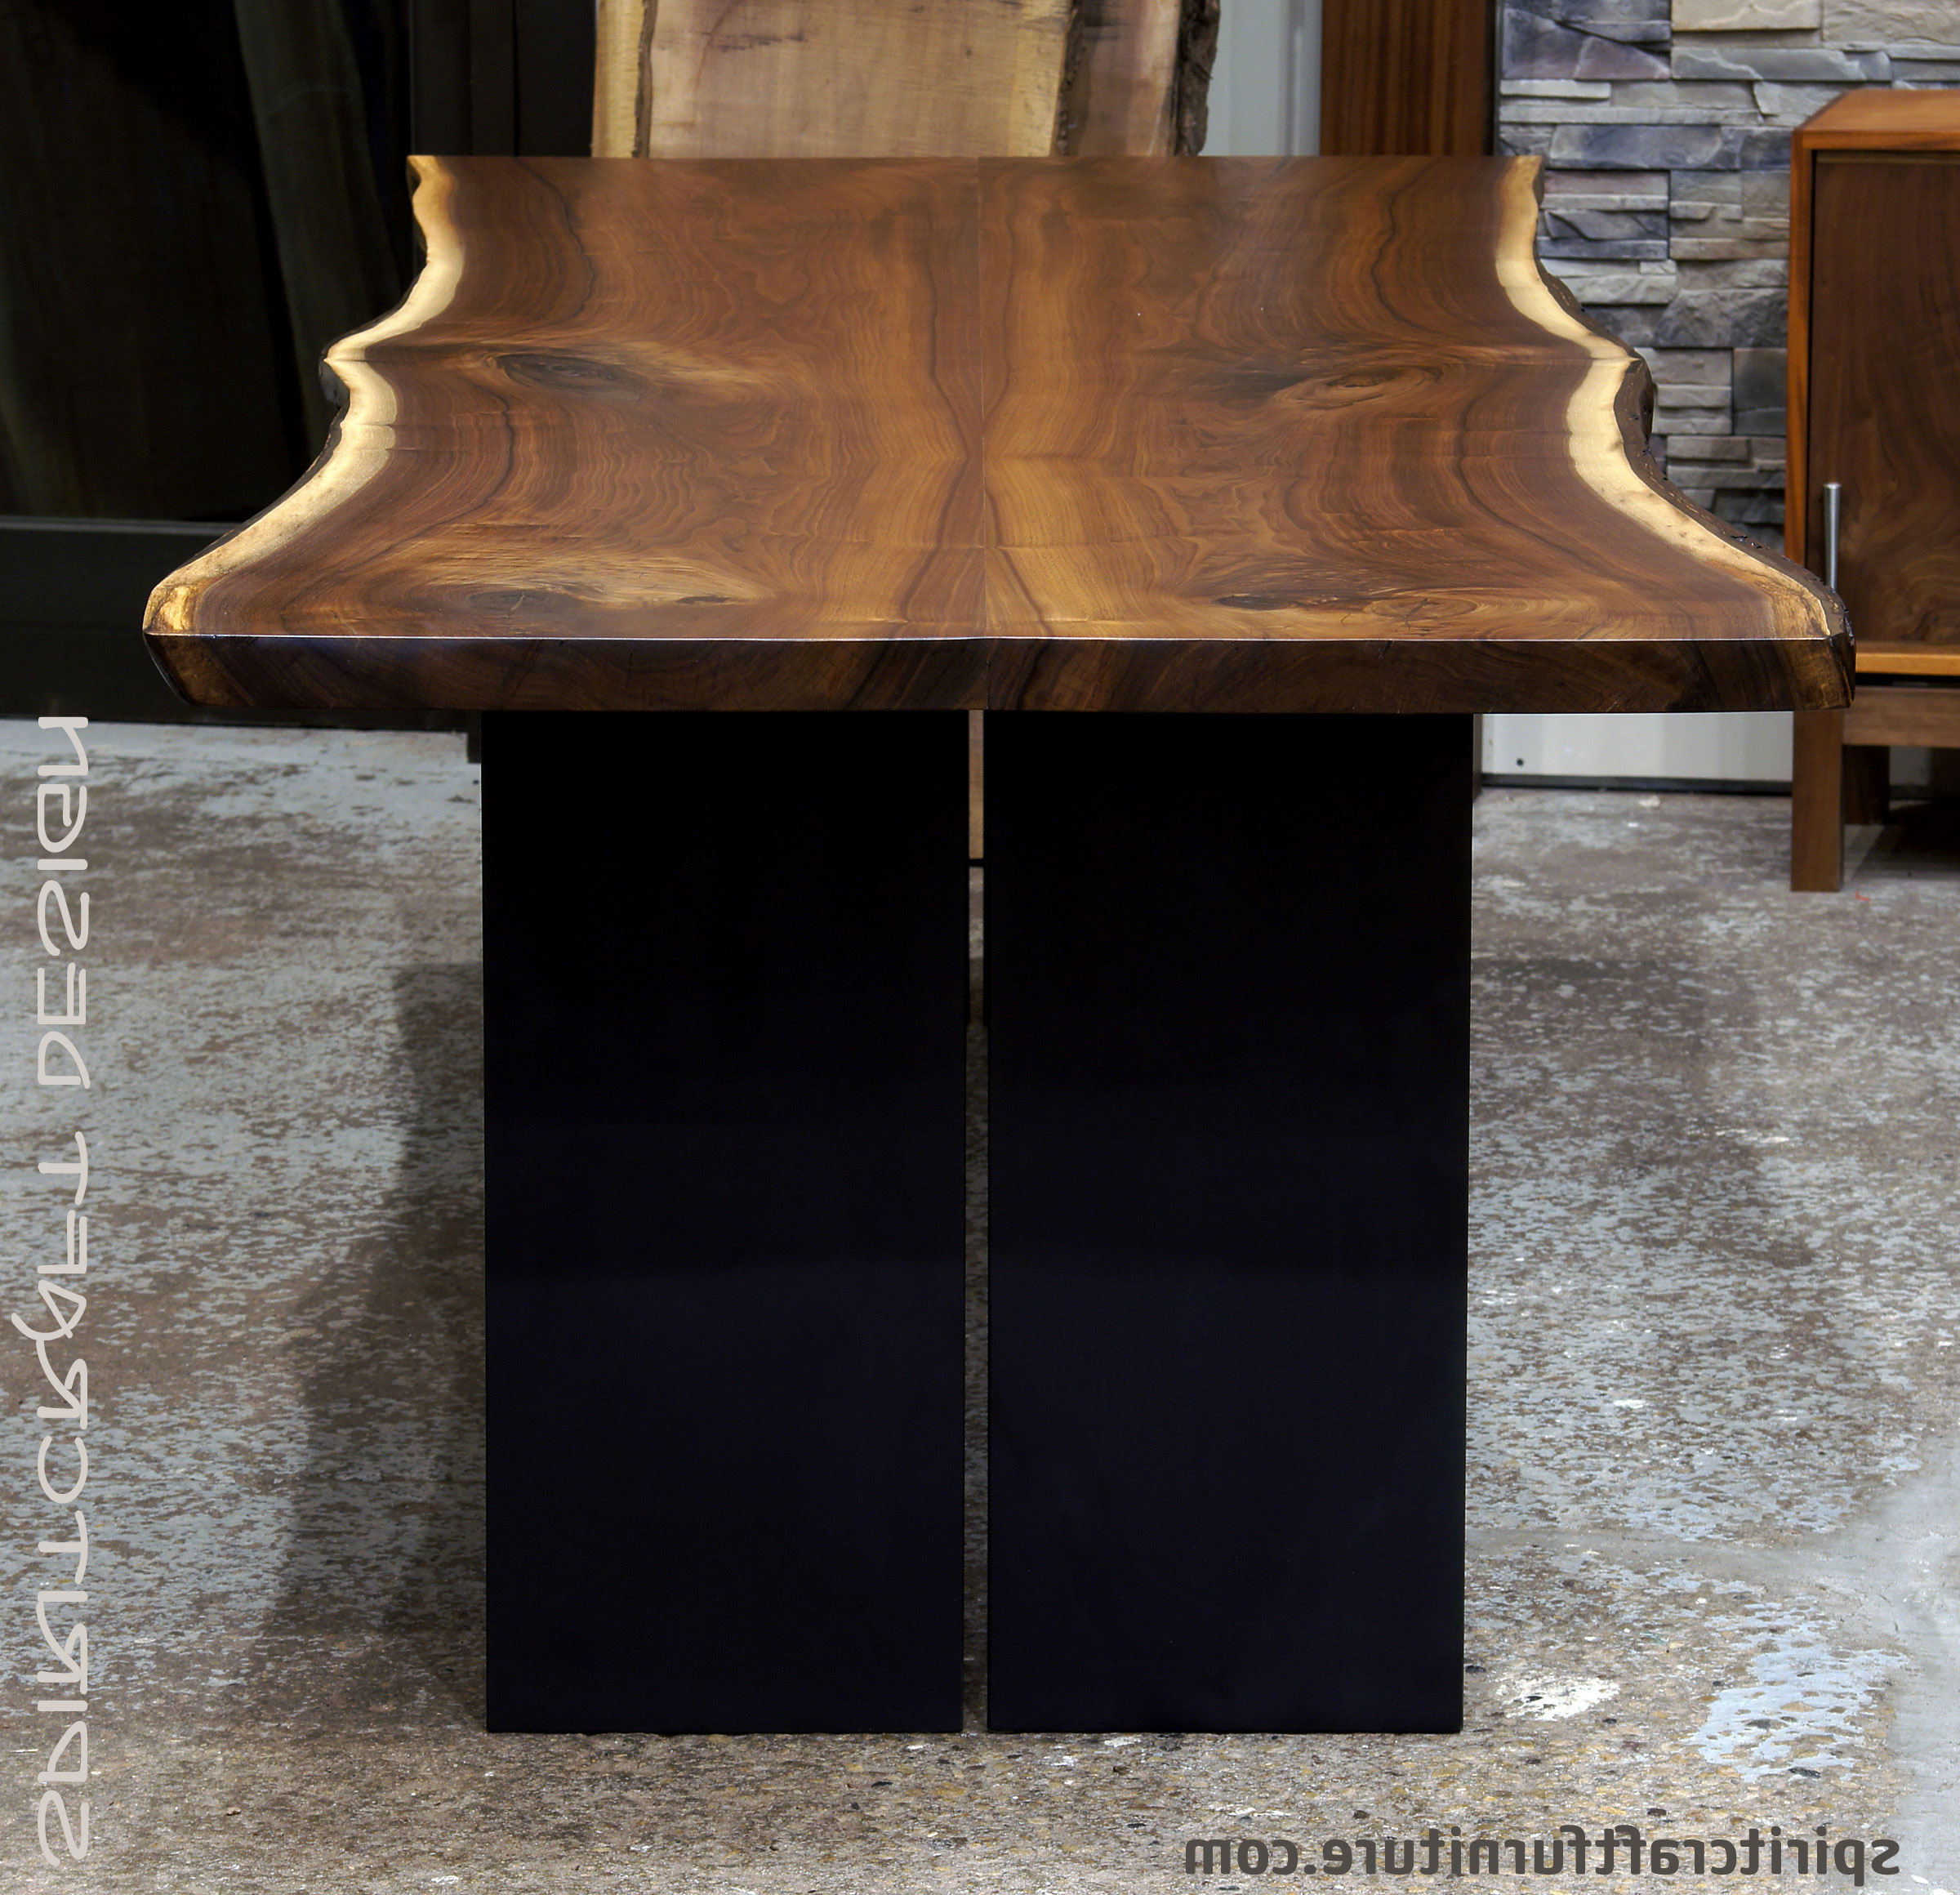 Walnut Finish Live Edge Wood Contemporary Dining Tables Intended For Best And Newest Live Edge Slab Dining Tables, Walnut Slabs And Tops (Gallery 11 of 30)